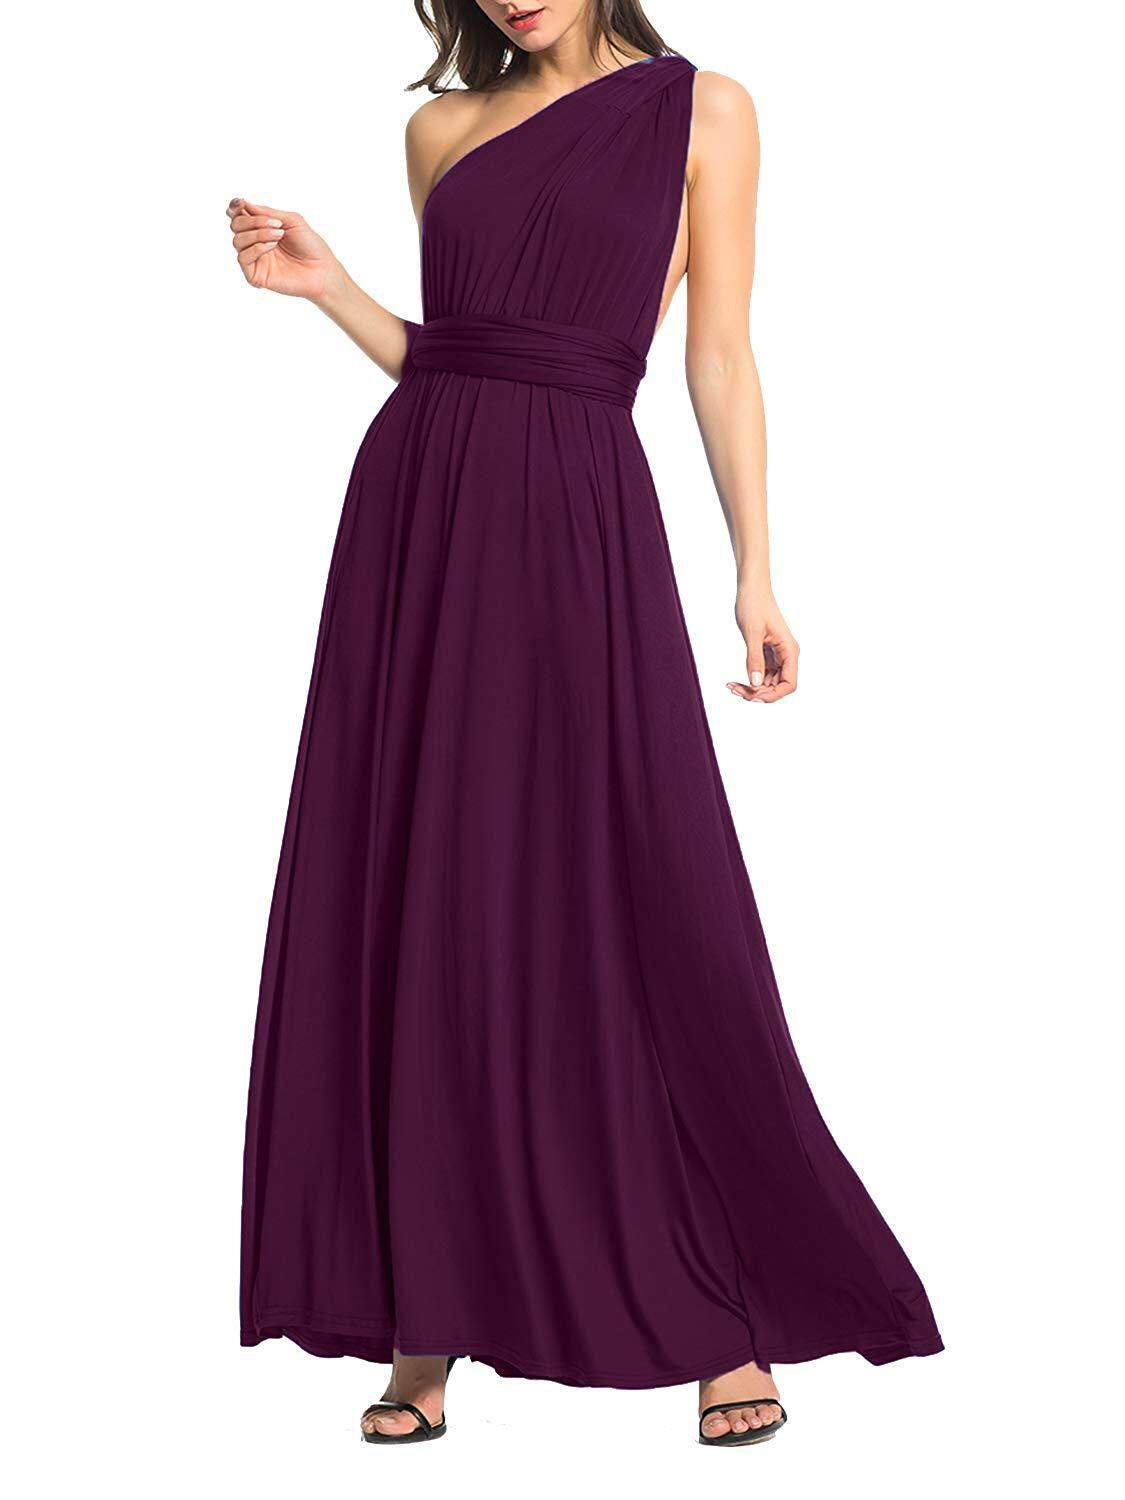 08dadb07ec6d Clothink Women's Convertible Wrap Multi Way Party Long Maxi Dress ...